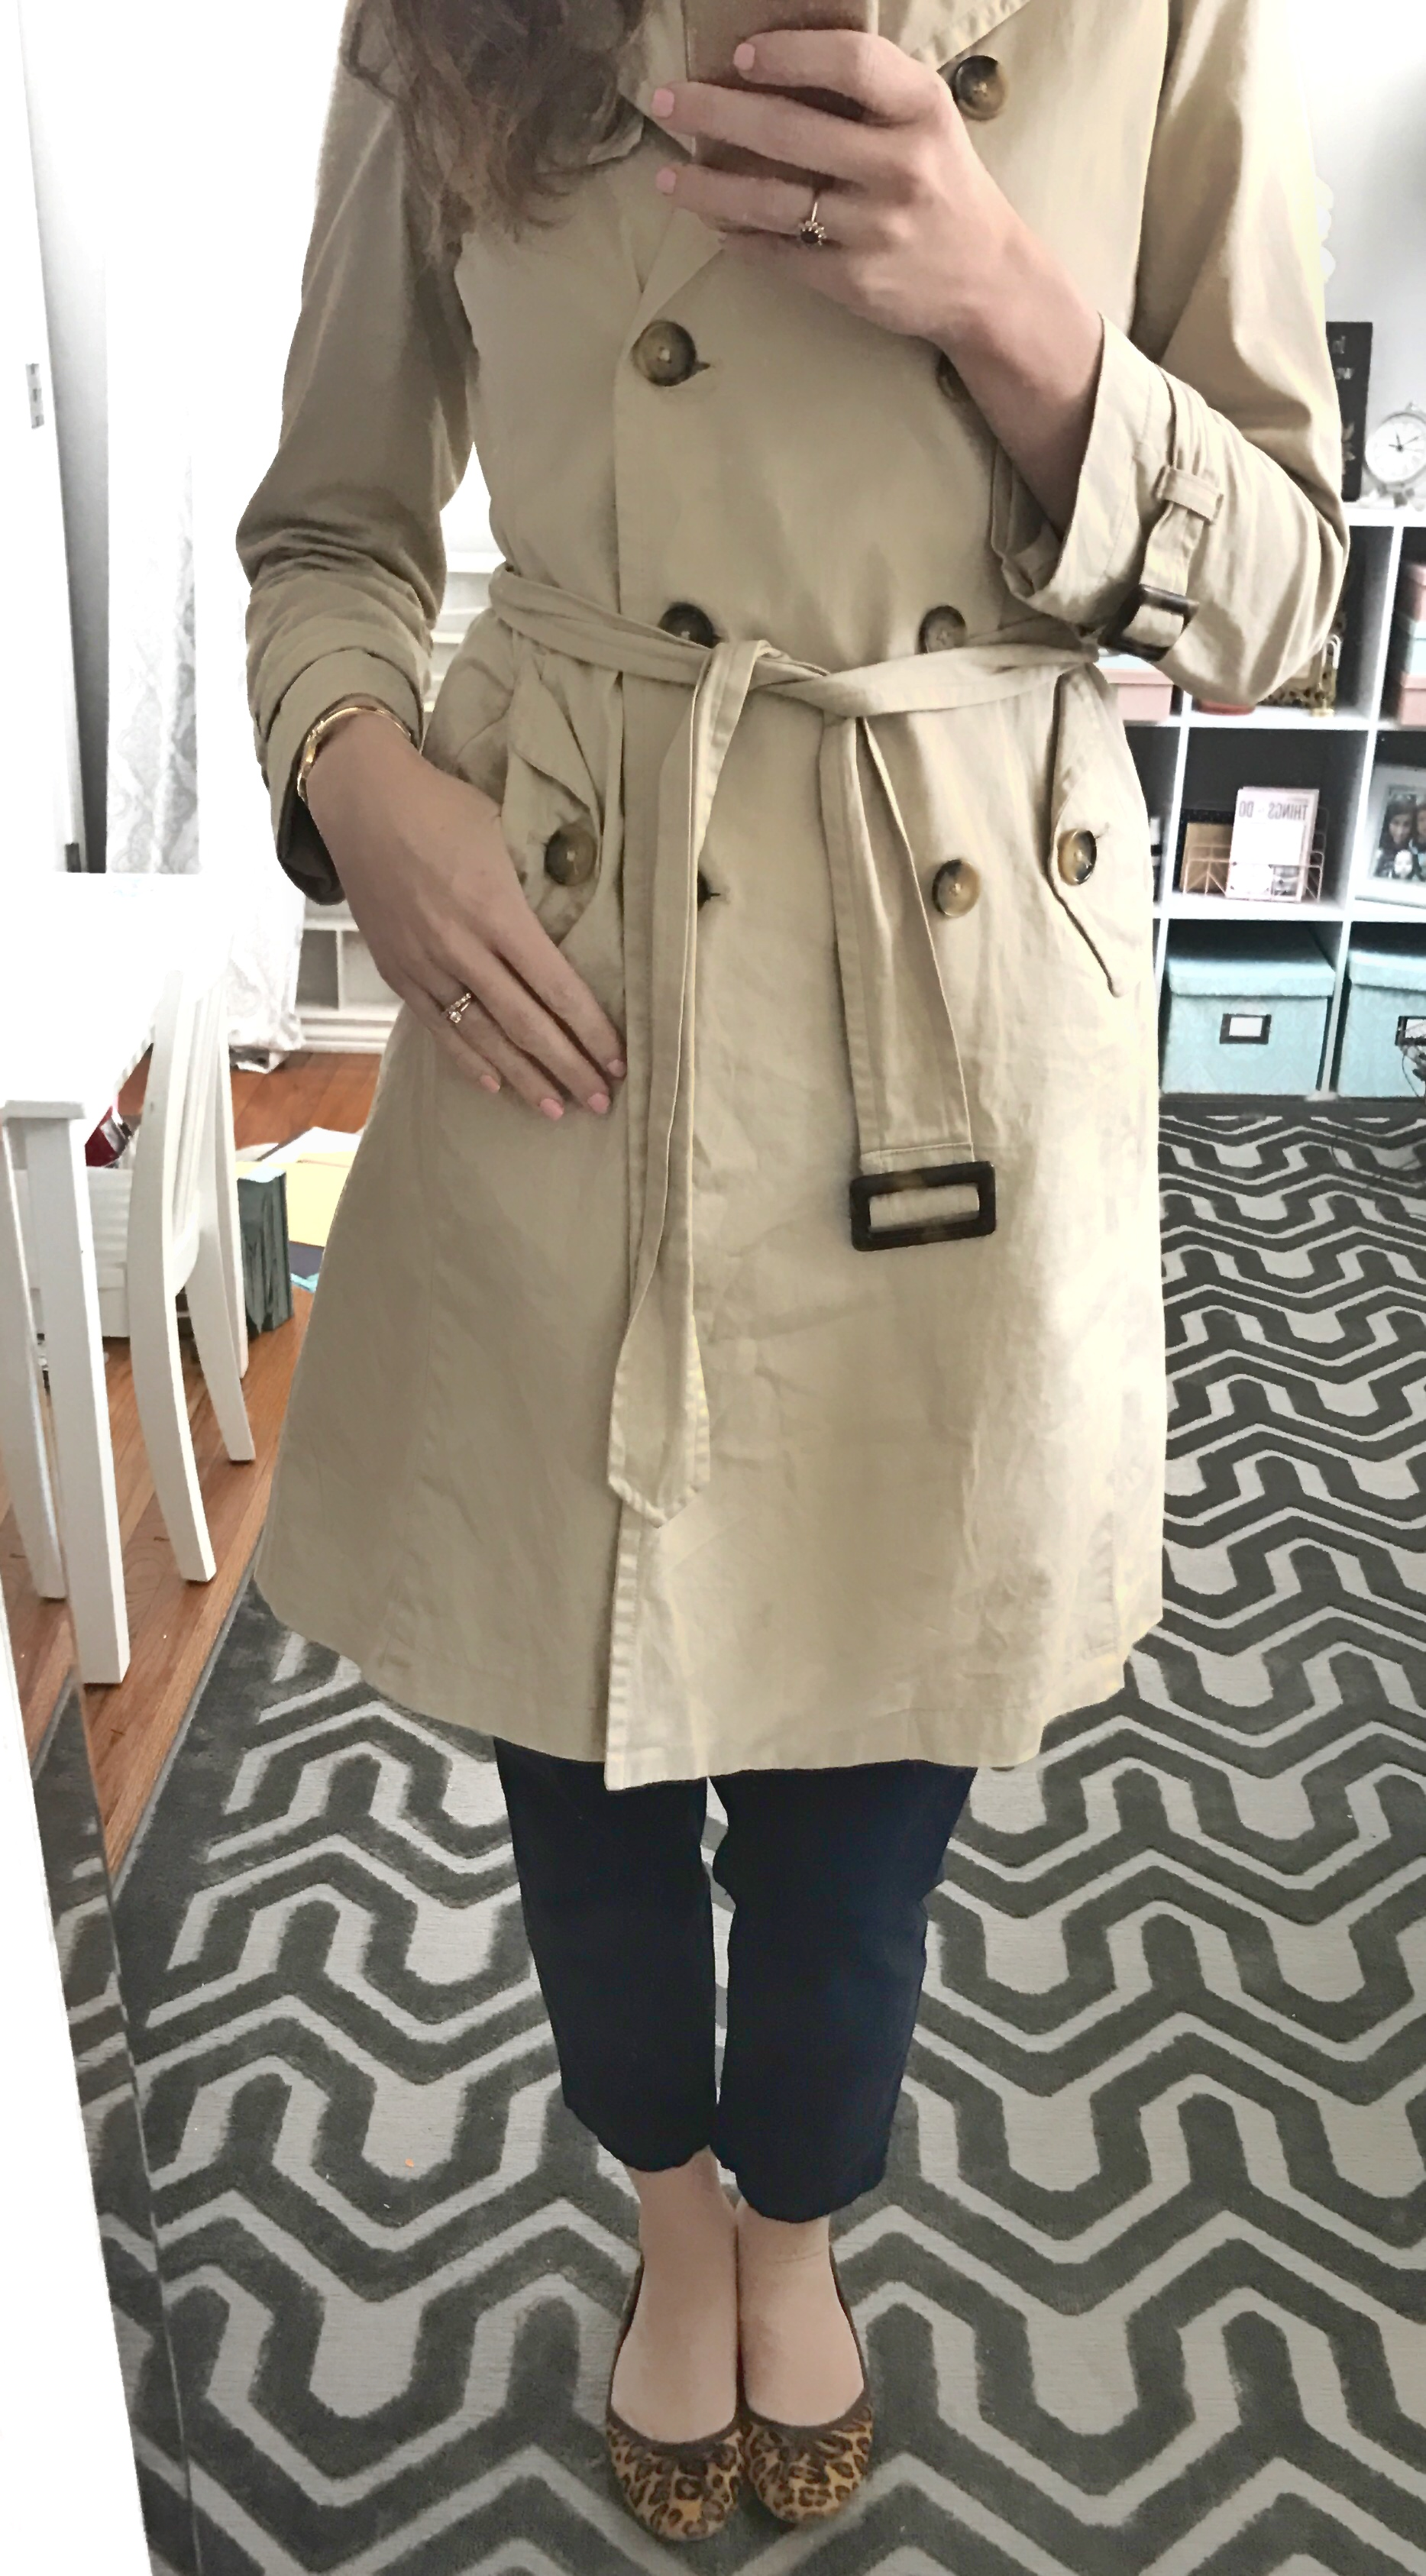 Banana Republic Trench coat, Gap navy cropped pants, leopard flats - From the Family with Love